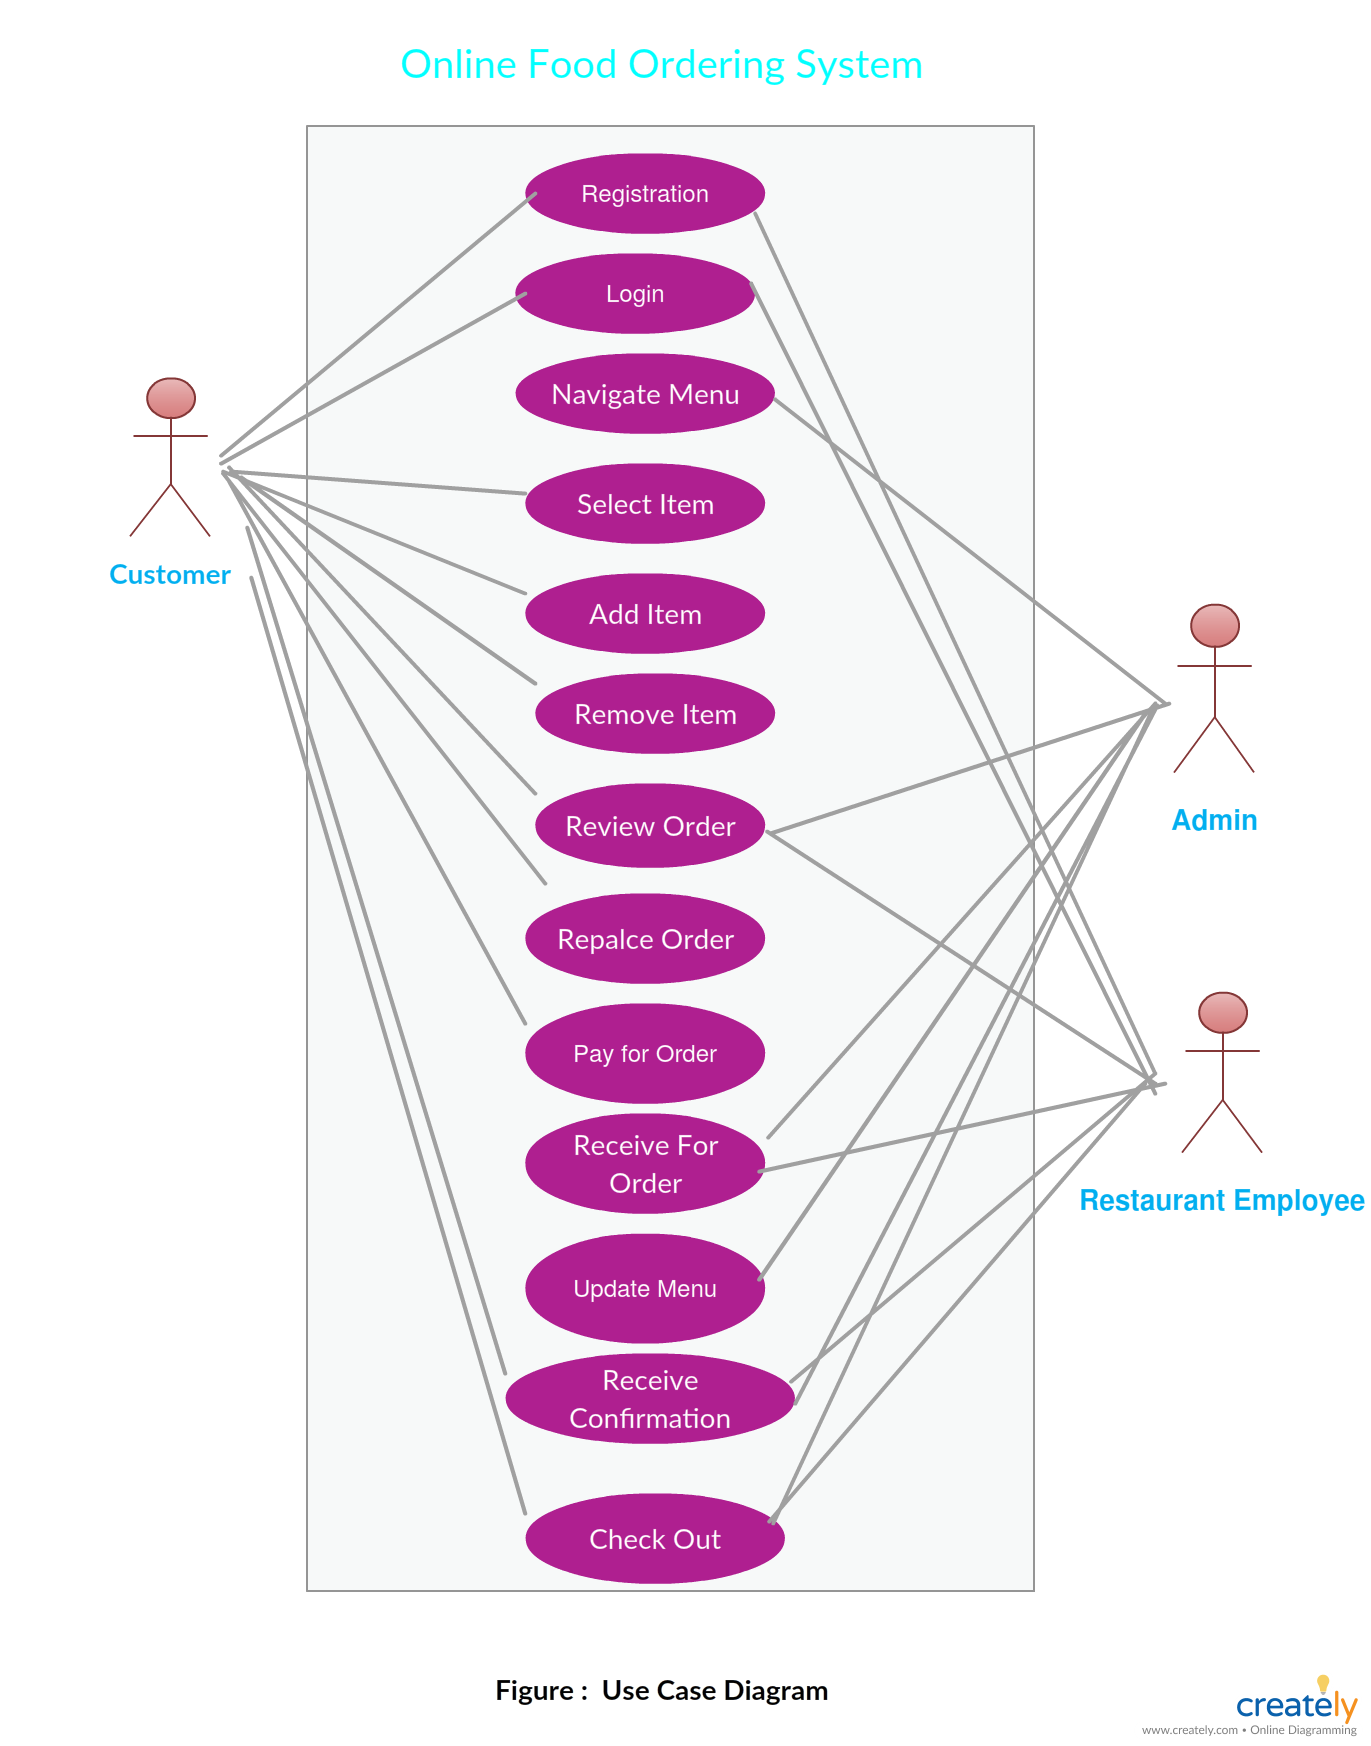 er diagram for online food ordering system a entity relationship diagram showing food ordering system ideal for restaurant chains who delivery food  [ 1371 x 1746 Pixel ]